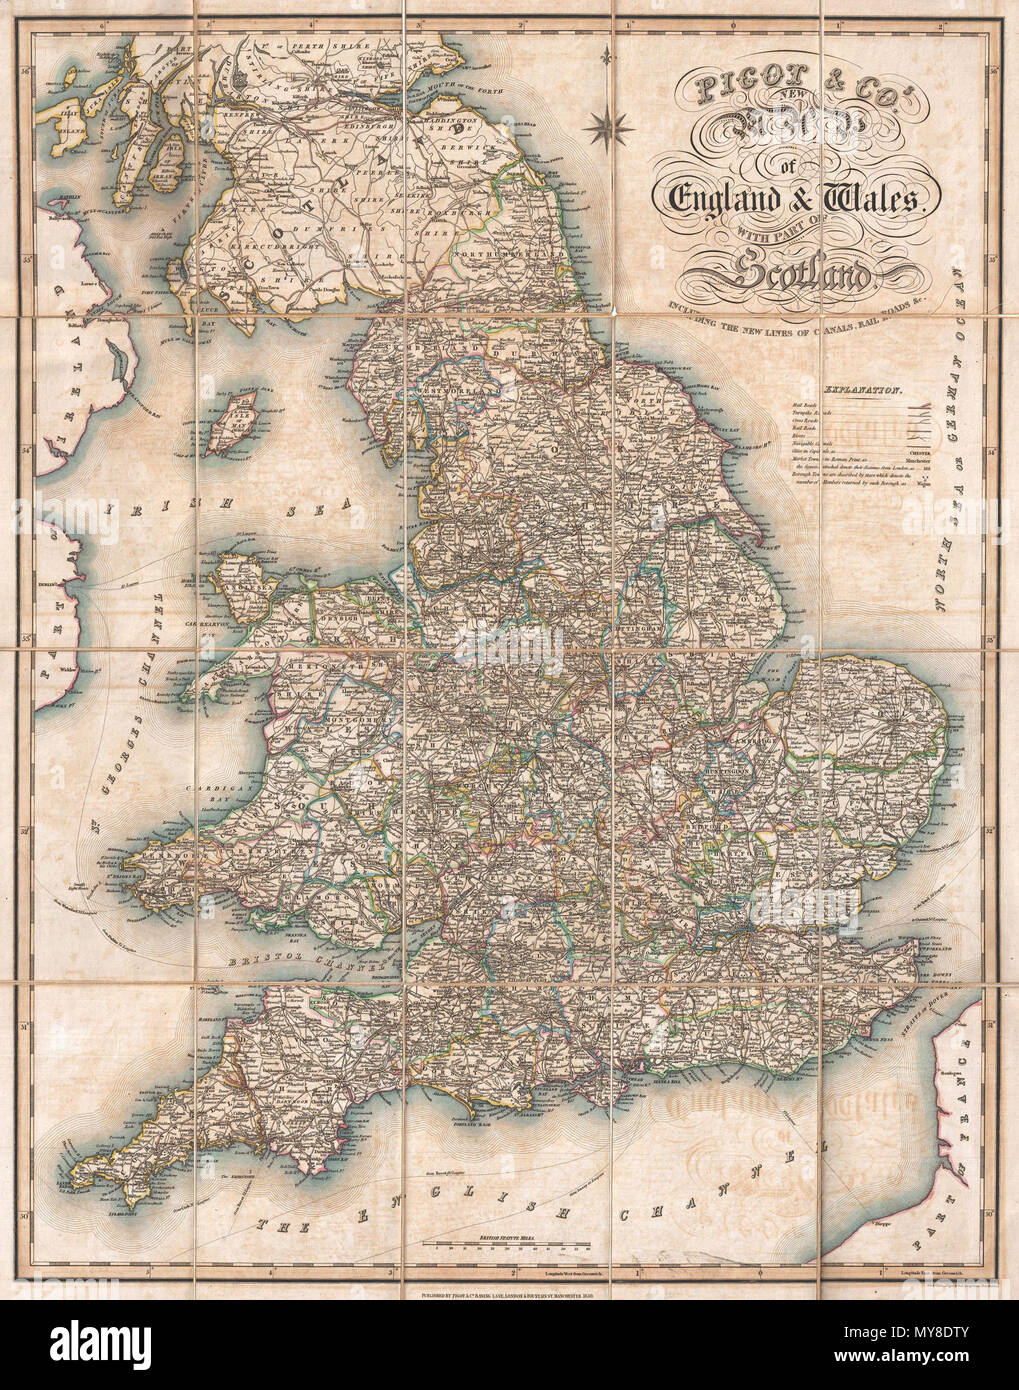 Road Map Of England And Wales With Towns.Pigot Co S New Map Of England Wales With Part Of Scotland